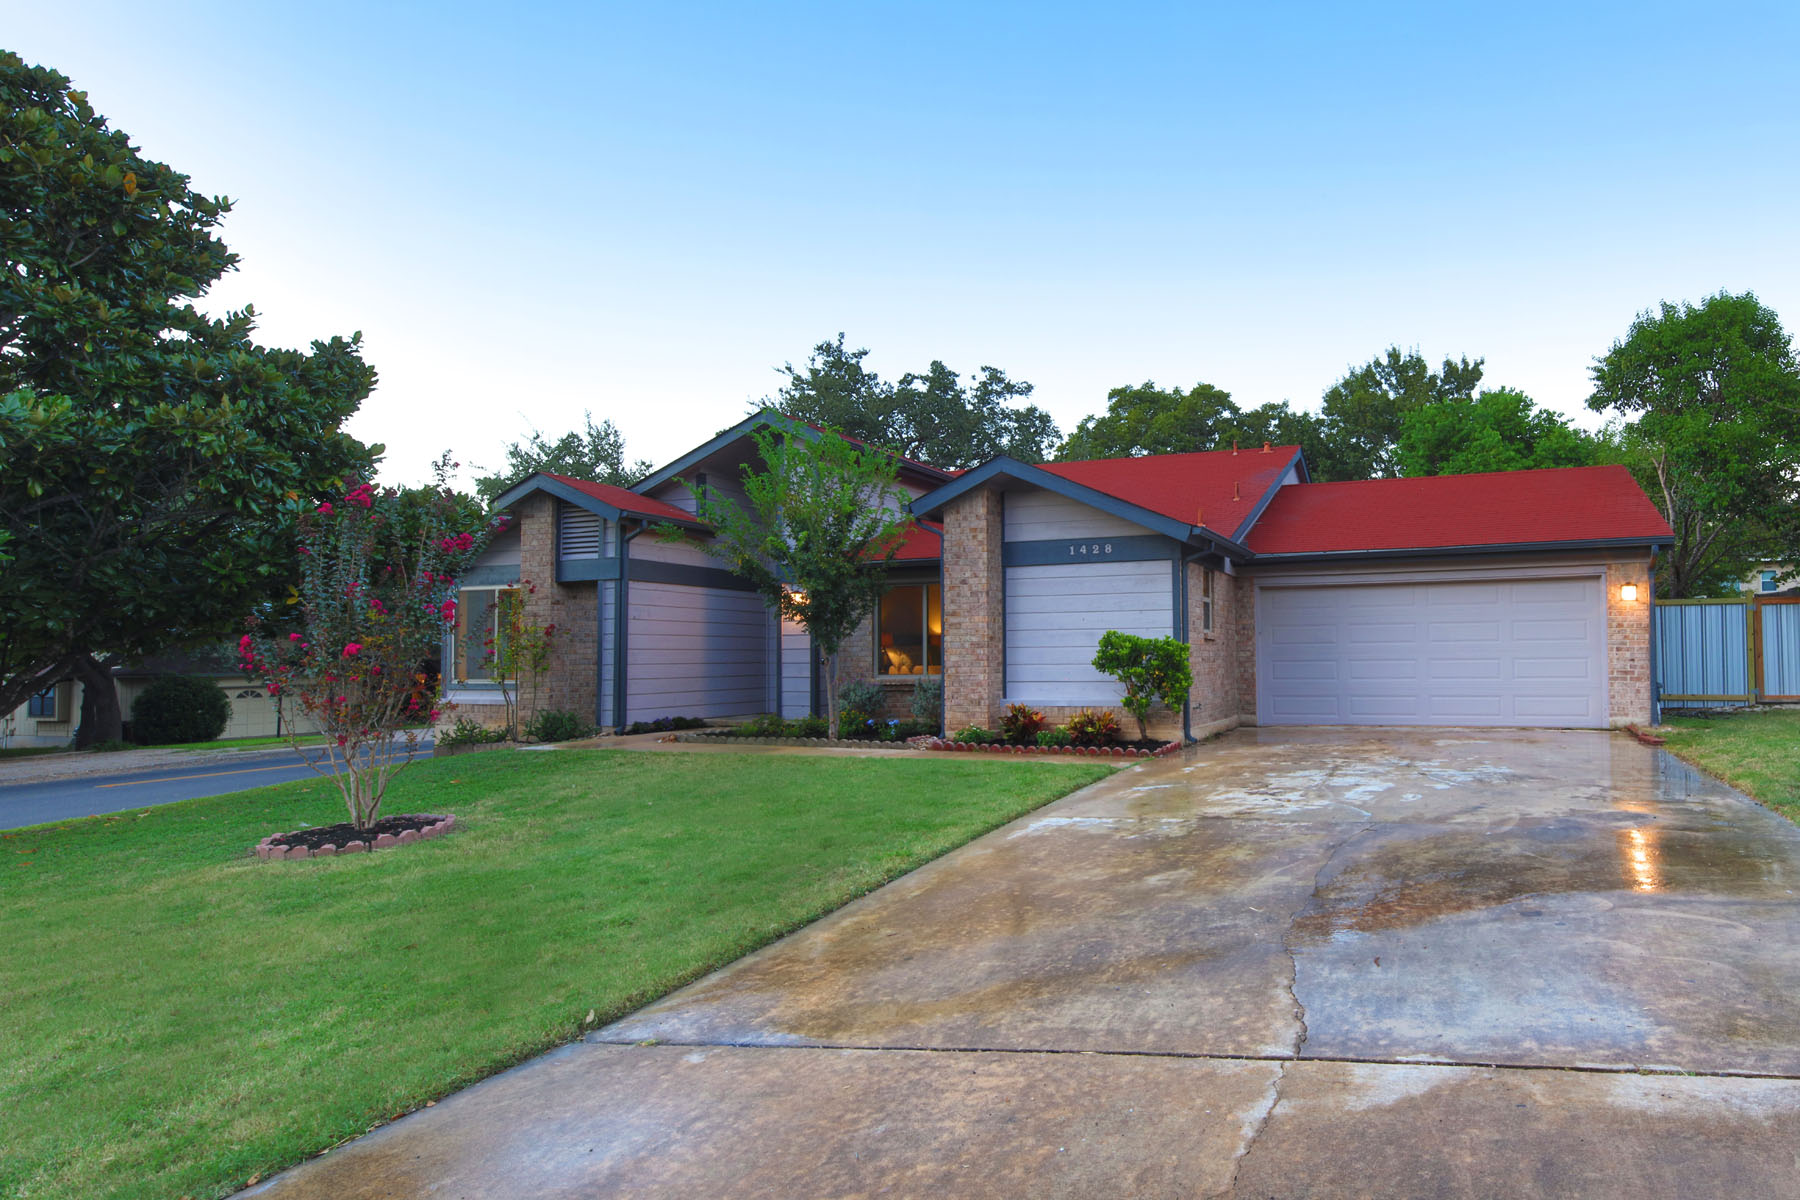 Single Family Home for Sale at Completely Remodeled with Architectural Charm 1428 Gracy Dr Austin, Texas 78758 United States